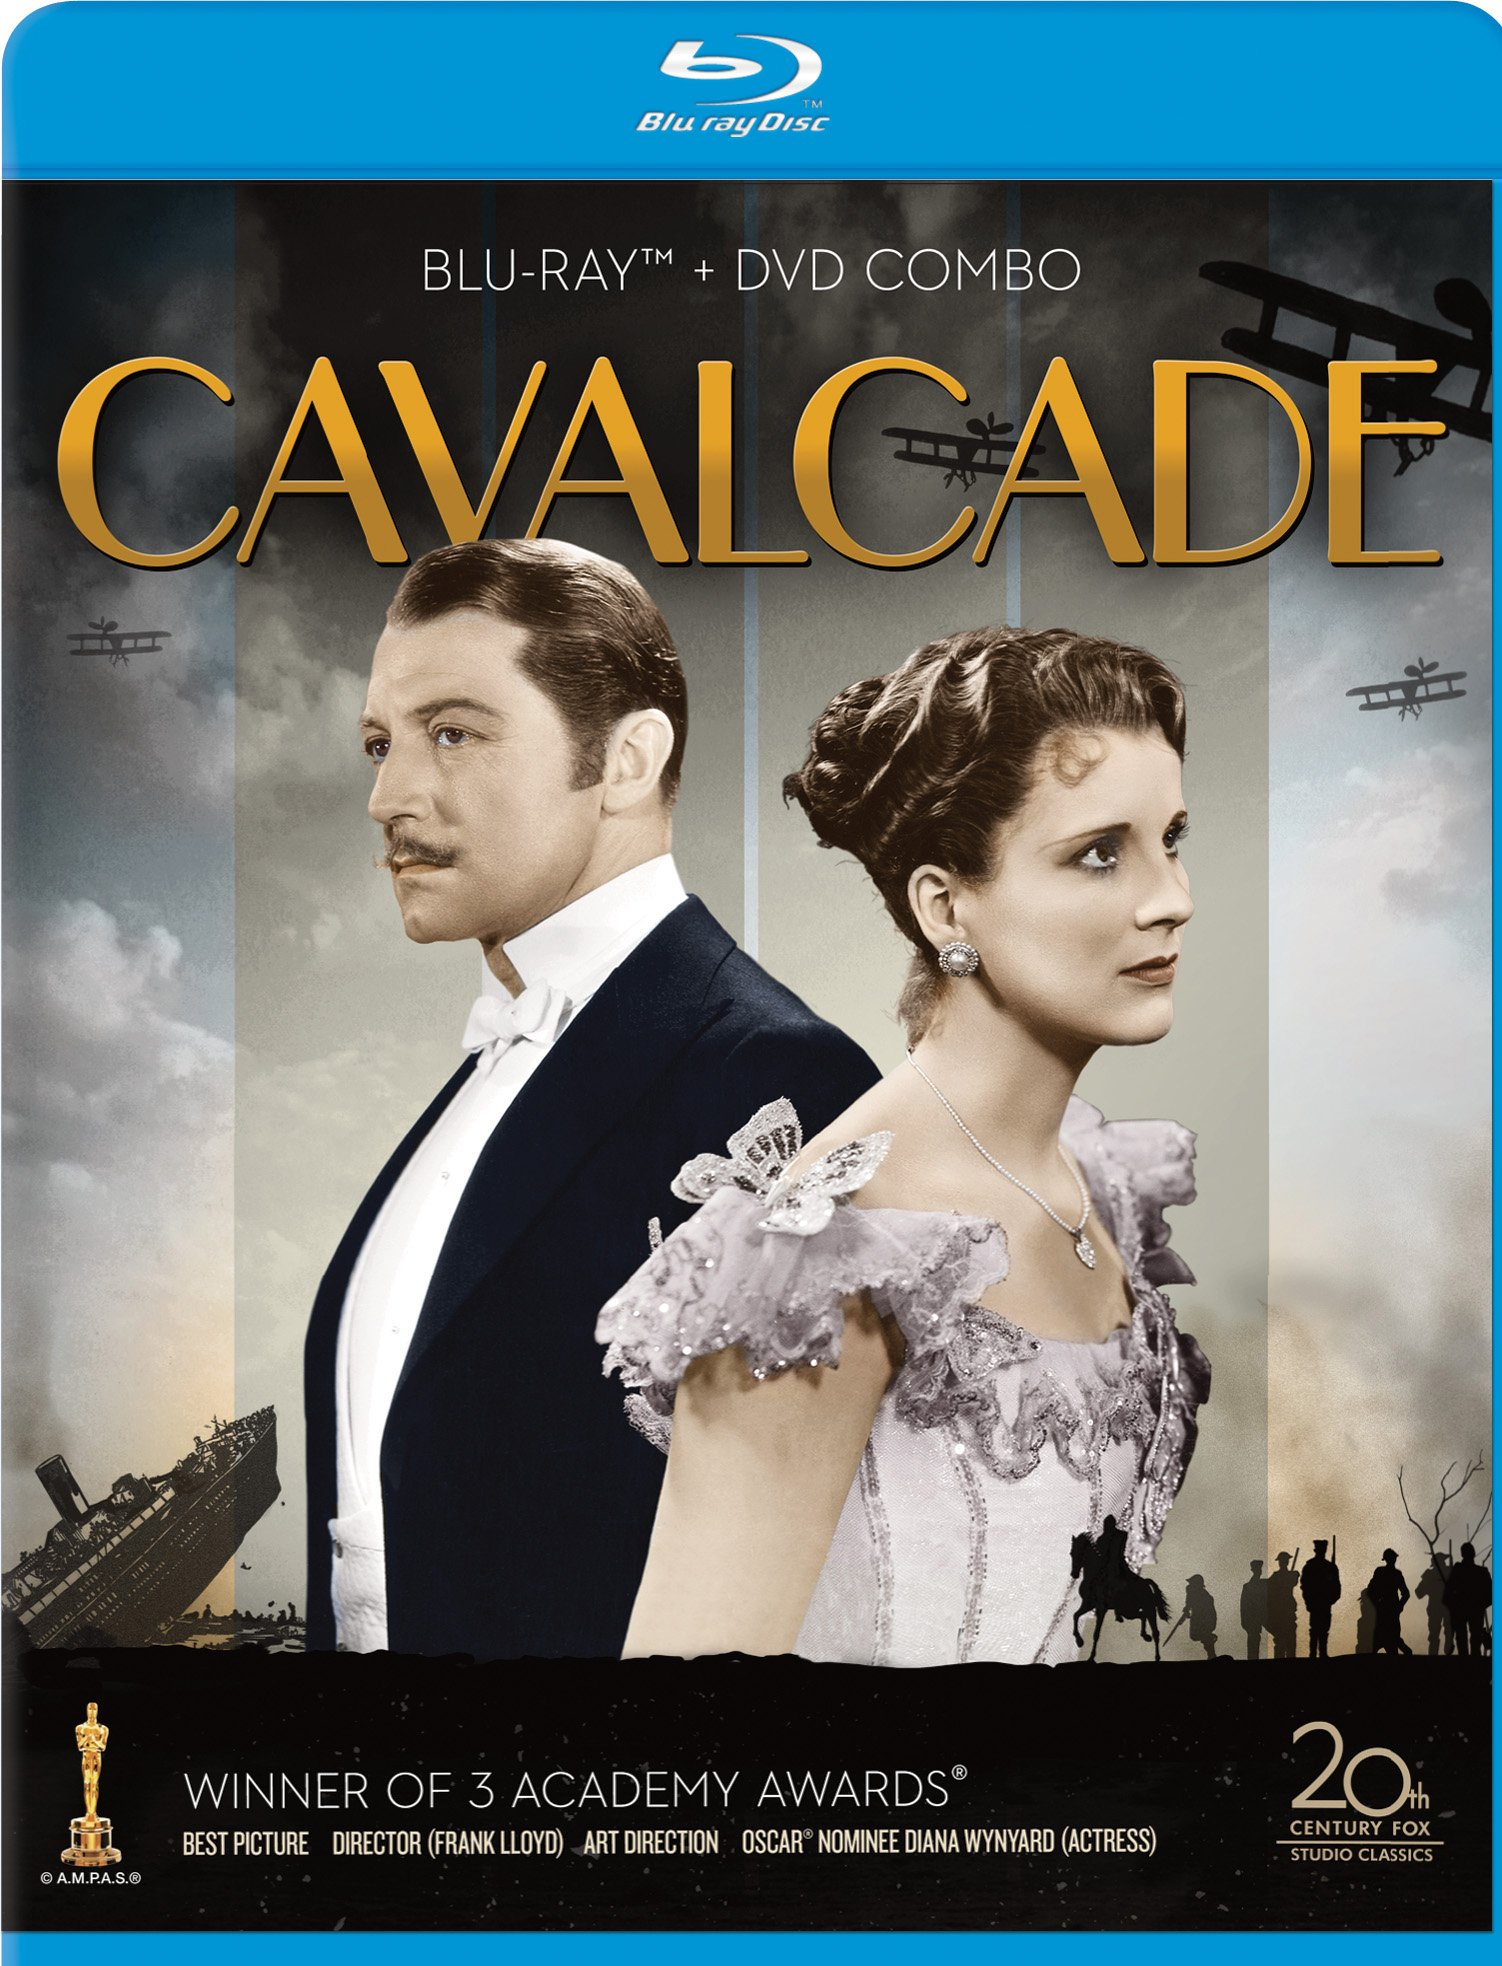 Blu-ray : Cavalcade (With DVD, Full Frame, 2 Pack, , Digital Theater System)